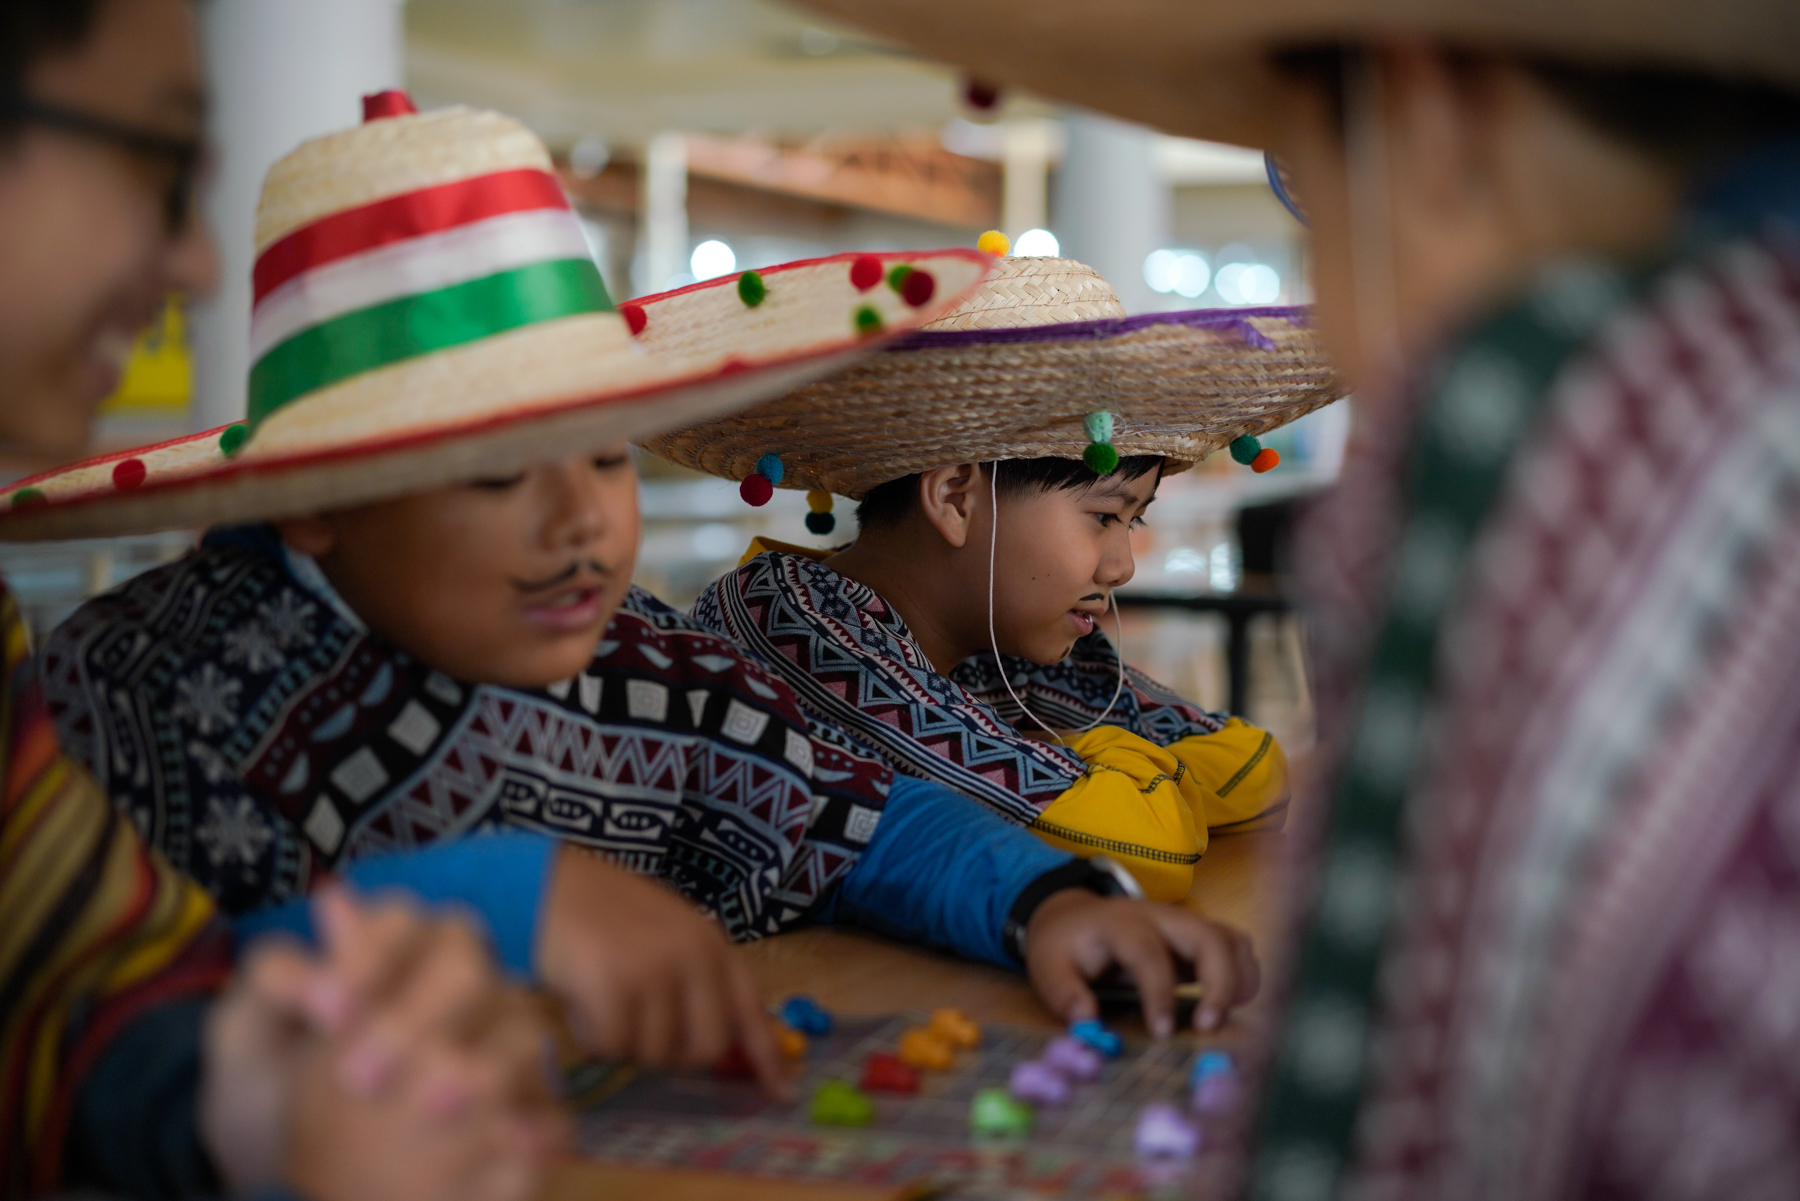 At NIS' International Day celebration, 12-year-old Zou Yanhu and his classmates prepare for a parade in a local approximation of Mexican costumes, January 26, 2019. NIS enrolls students from preschool to high school and offers Advanced Program (AP) courses to prepare them to go to American and Canadian universities.